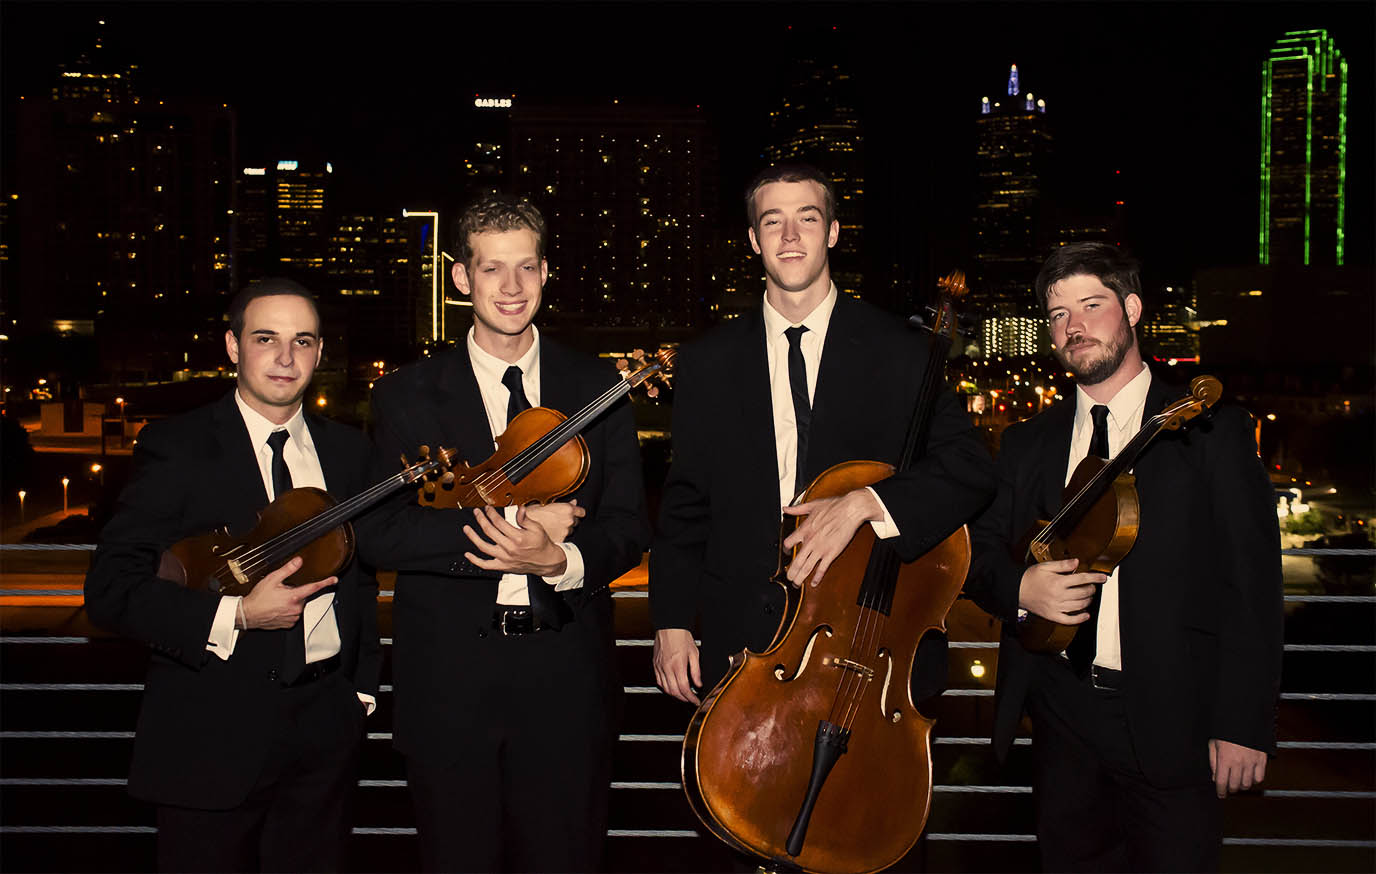 Altius Quartet (left to right) - Sercan Danis, Andrew Giordano, Zachary Reaves and Andrew Krimm. Photo by Brad Sigler